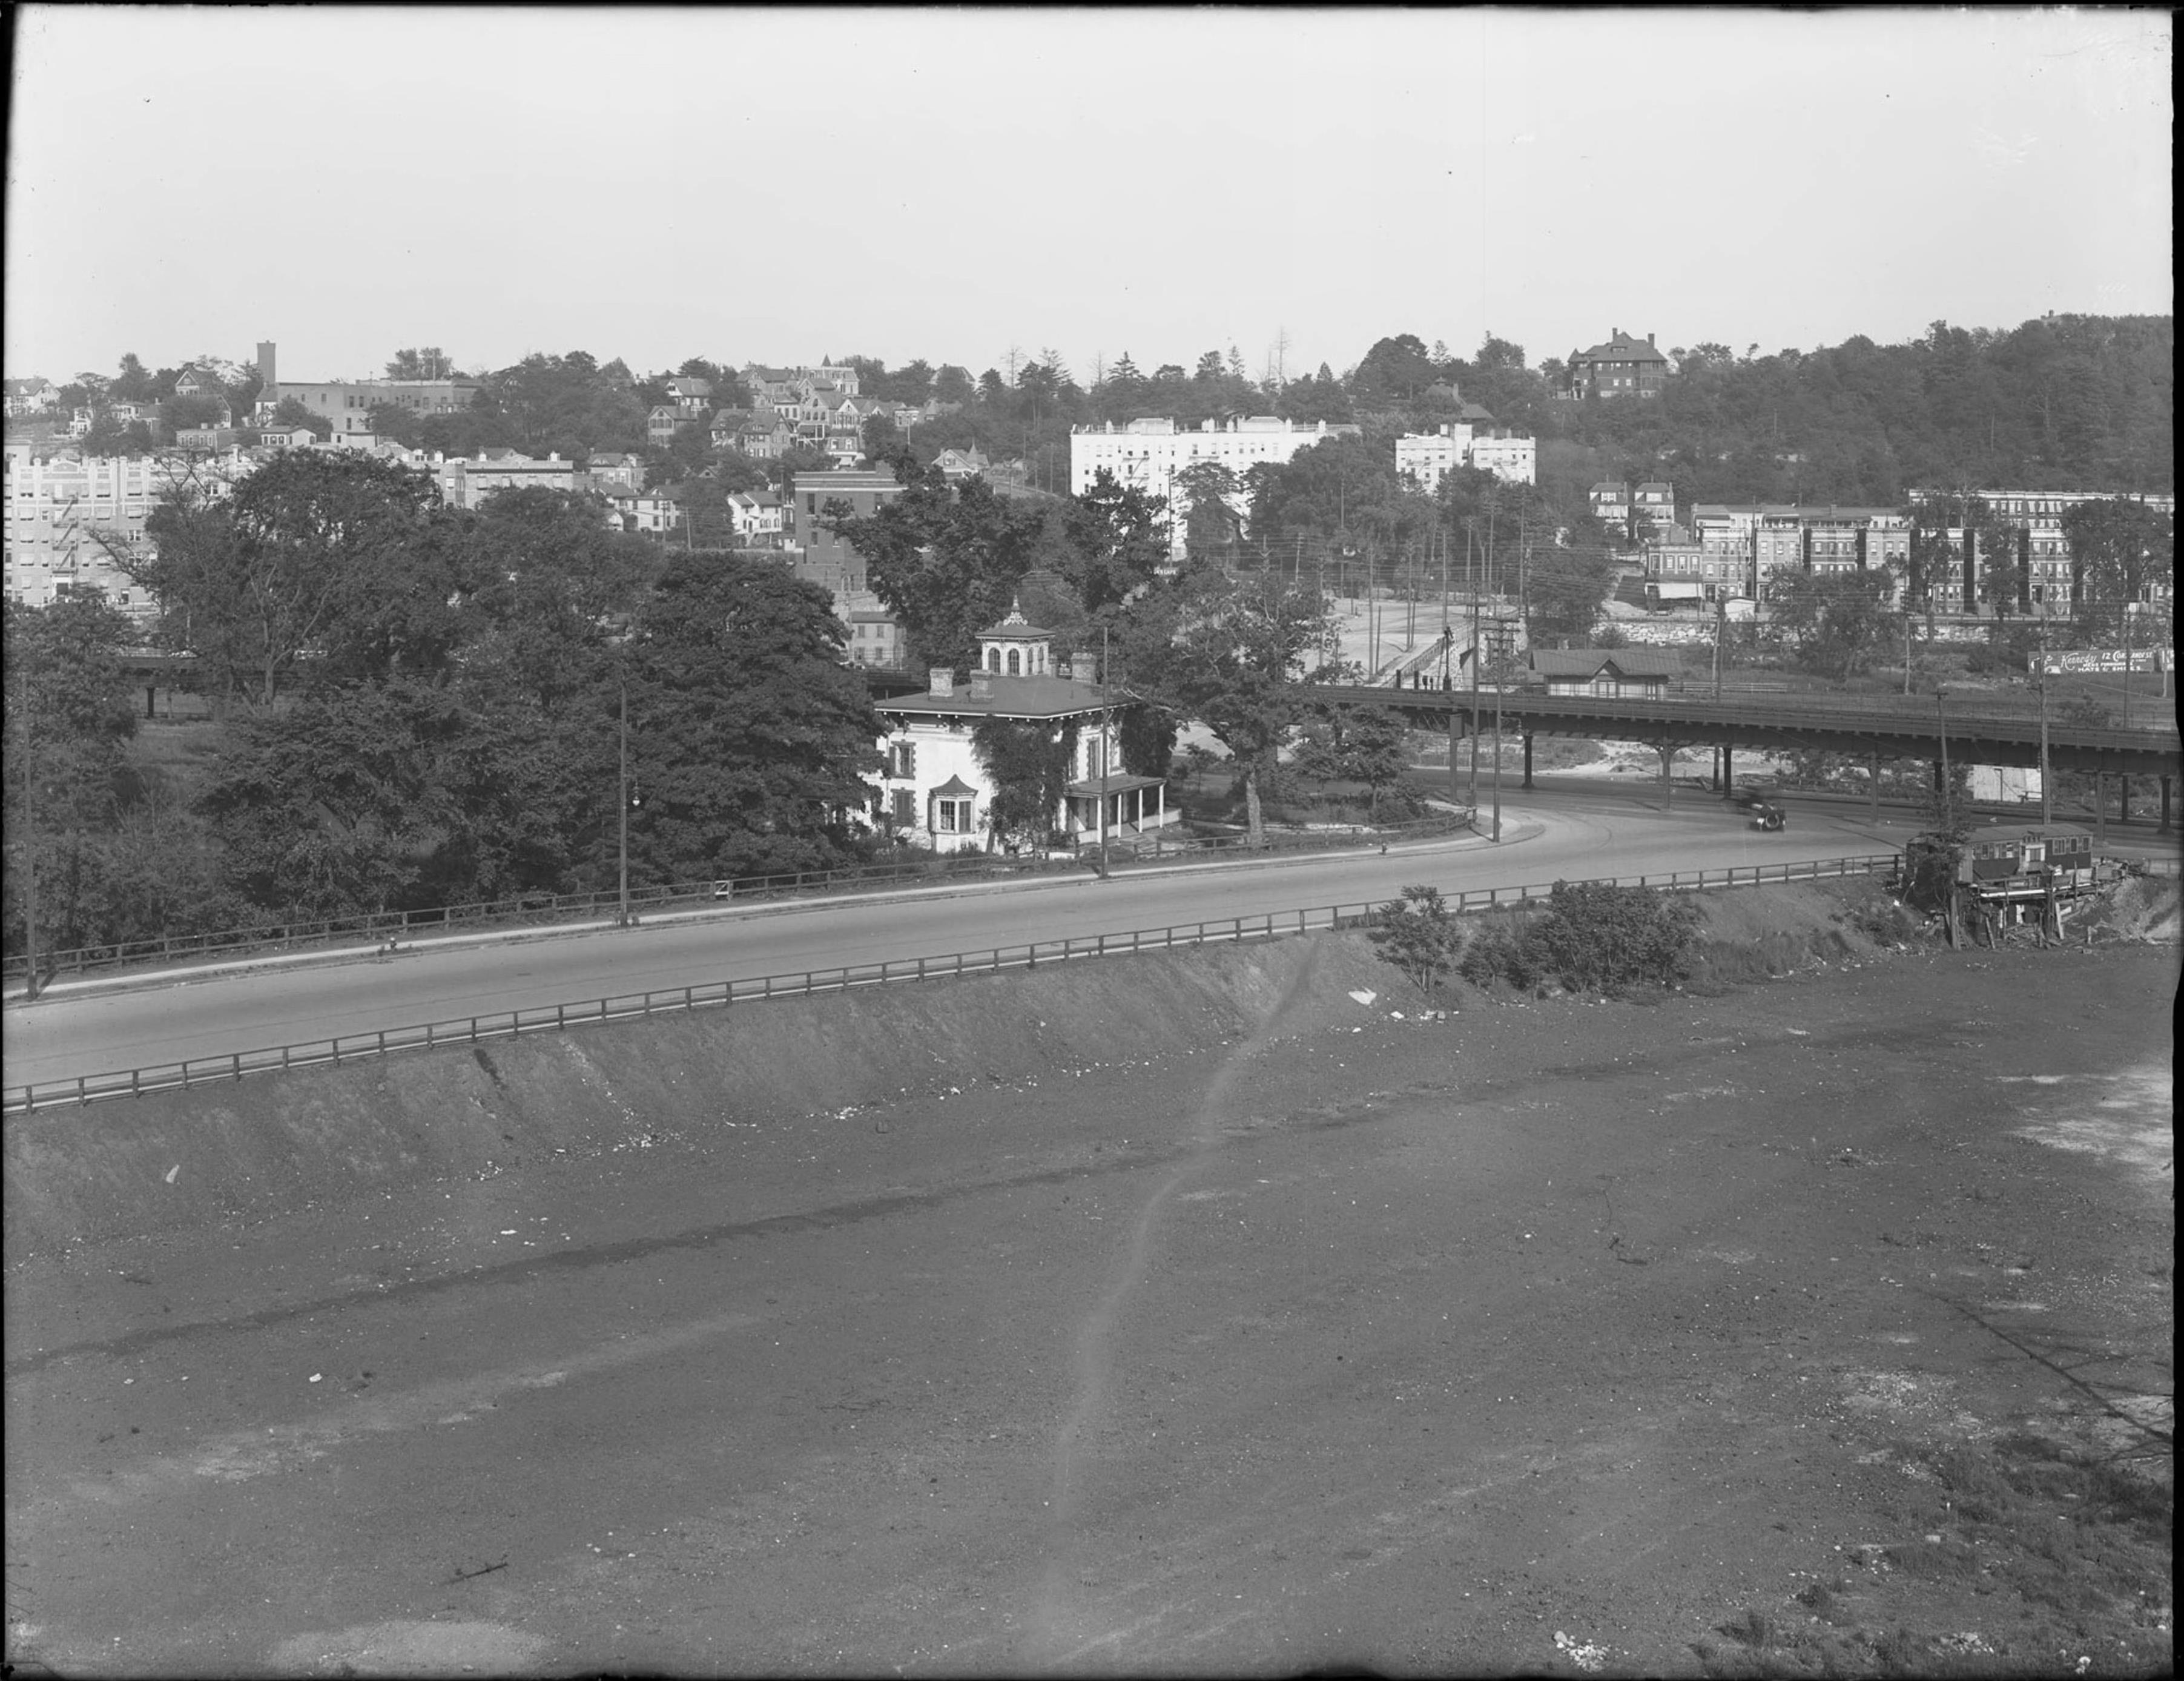 Part 1 of a panorama of Broadway, Kingsbridge Avenue, Bailey Avenue, and Crescent Road, Bronx, June 2, 1916. Photographed for Joseph P. Day.